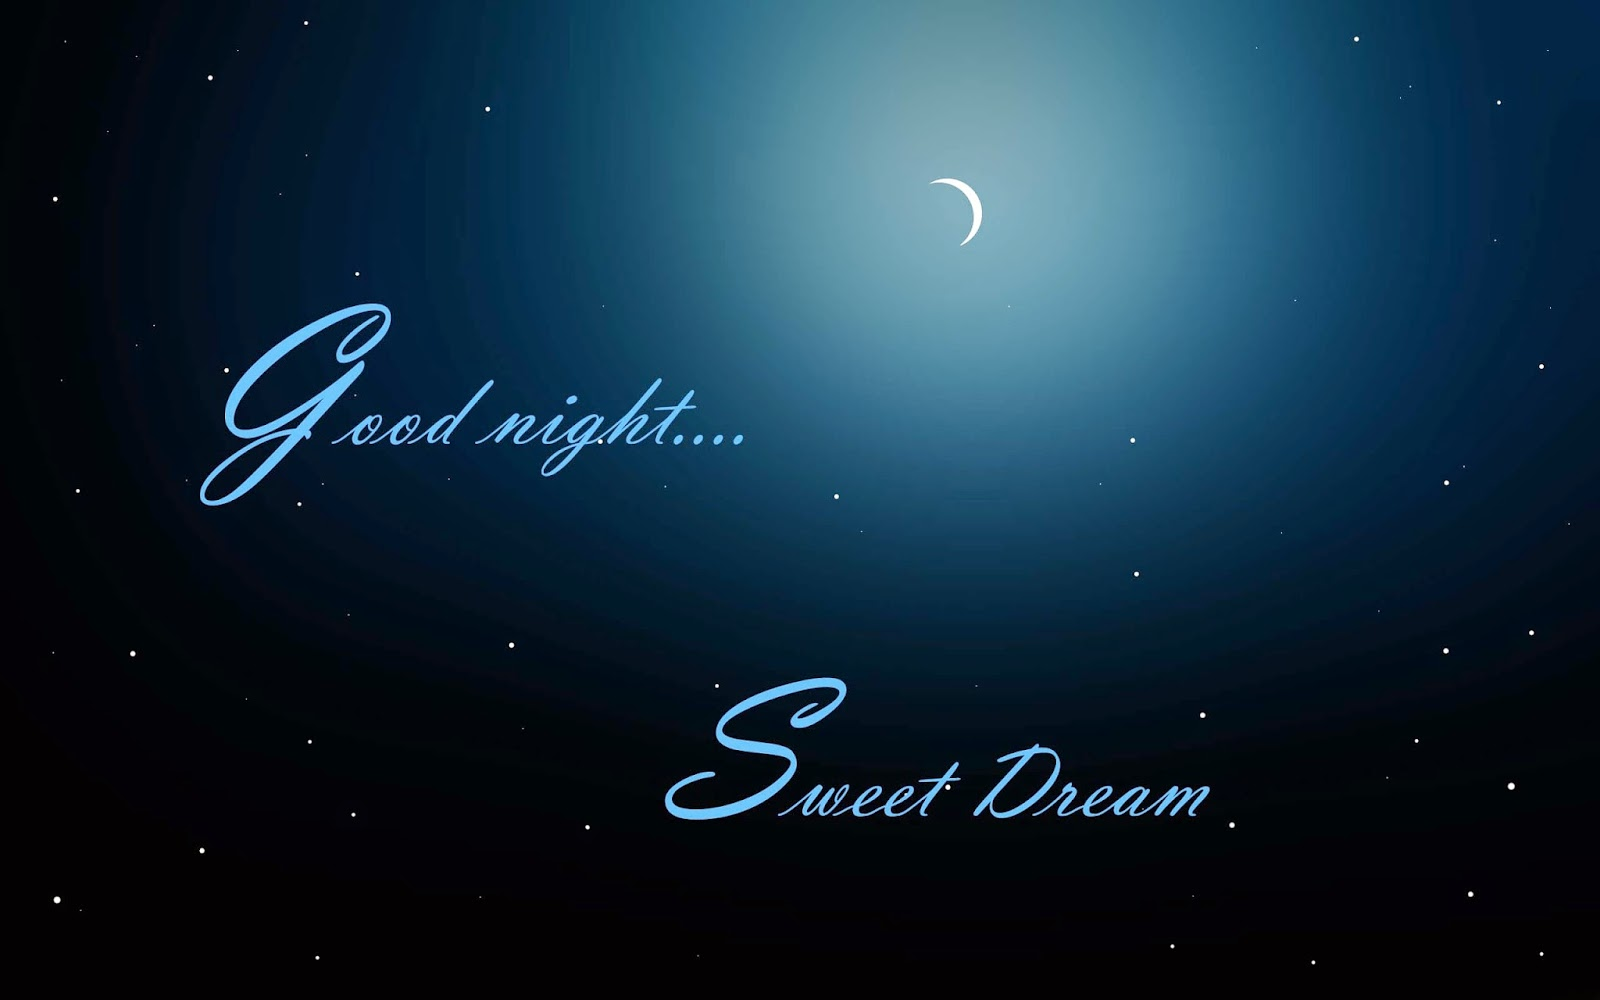 Good Night Whatsapp Images - Best Hindi Shayari SMS